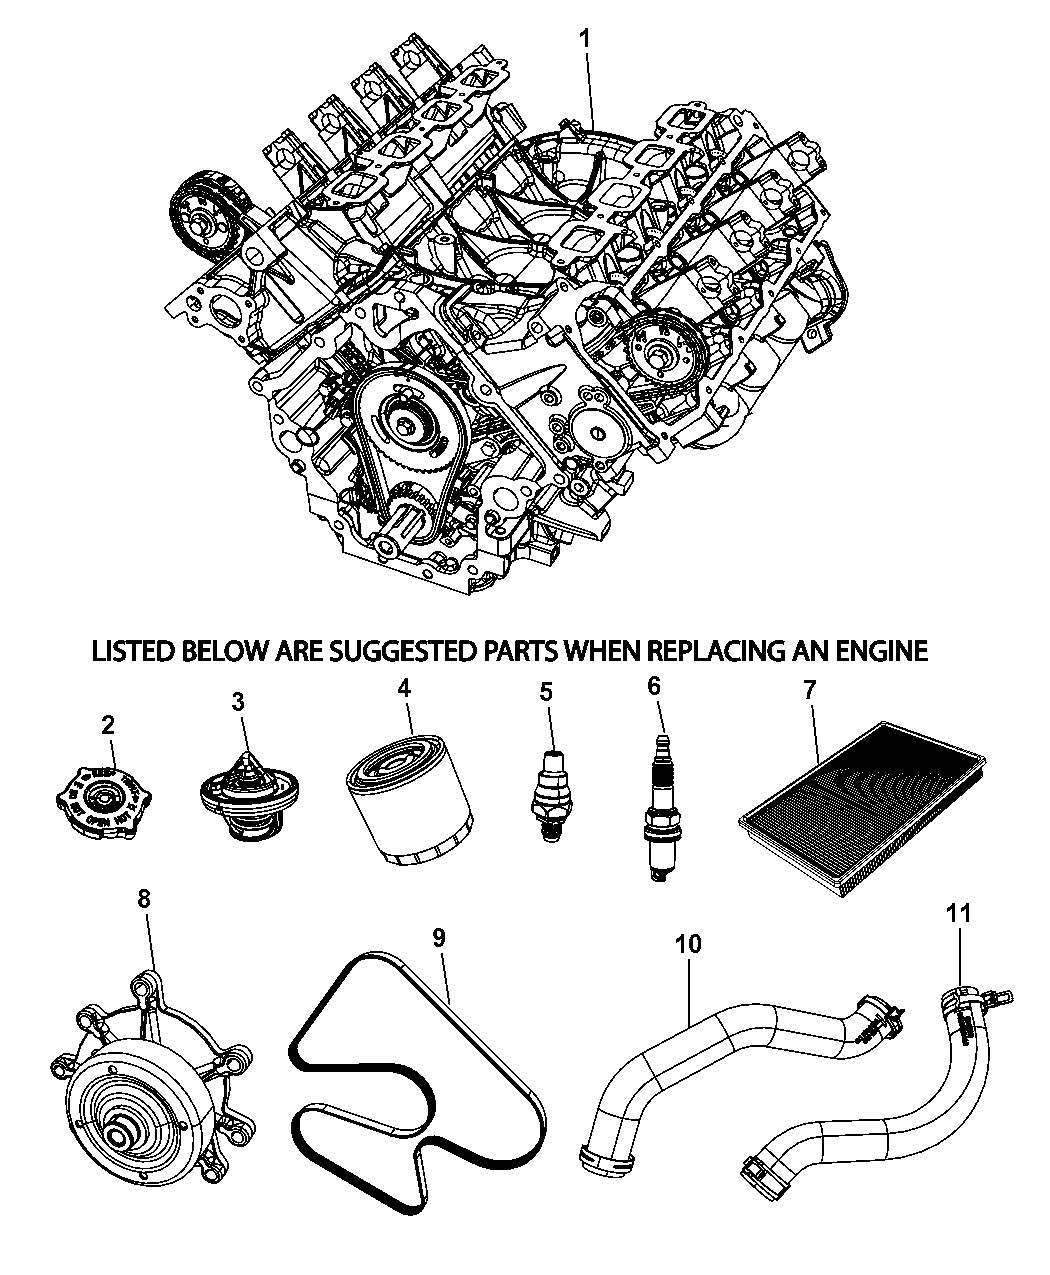 Resource T D Amp S L Amp R Ab C Ee C Db E C Daf Ab E C C A D A Ad D on Chrysler Aspen Oem Parts Diagram